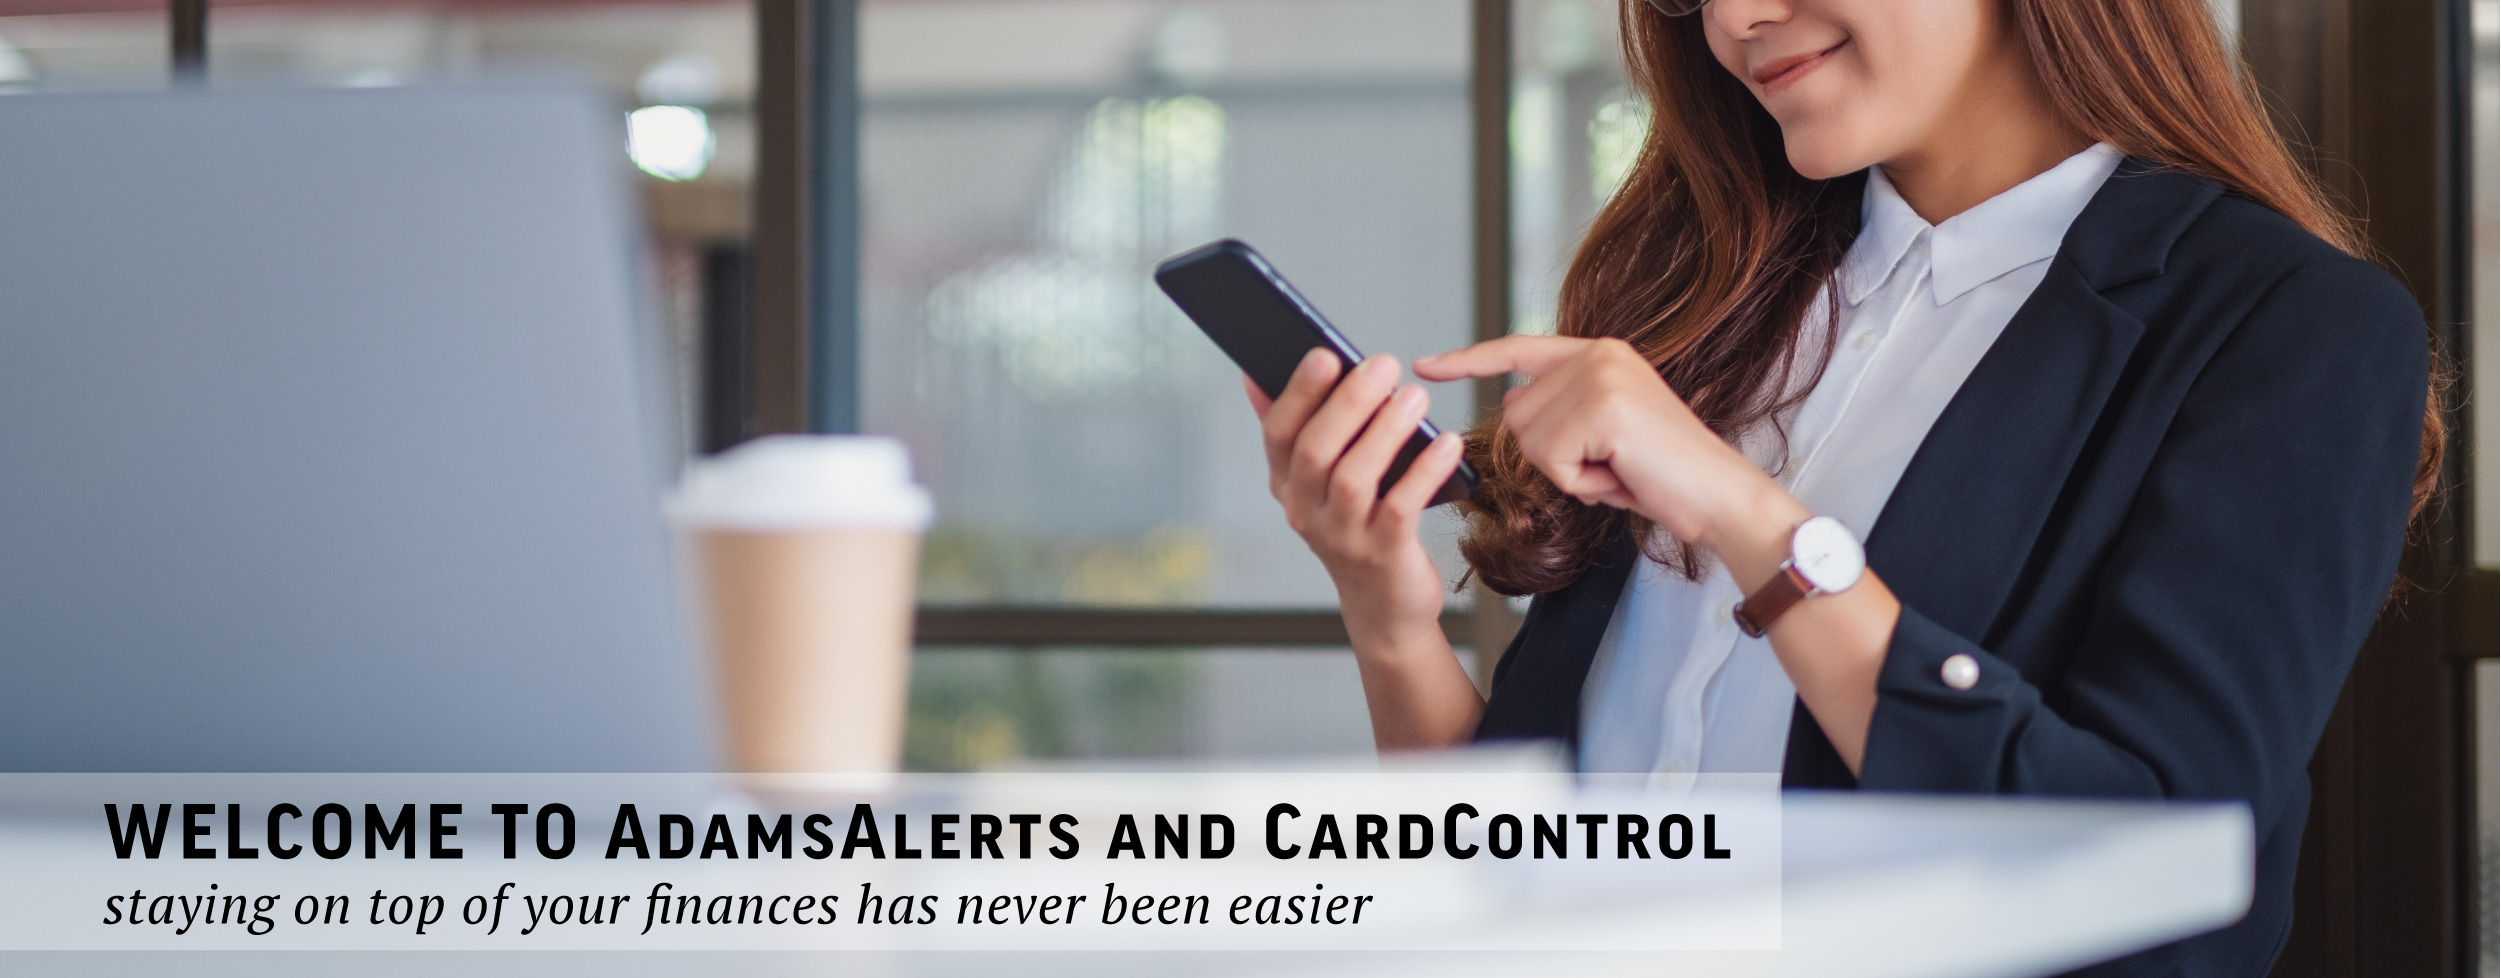 Welcome to AdamsAlerts and CardControl. Staying on top of your finances has never been easier.